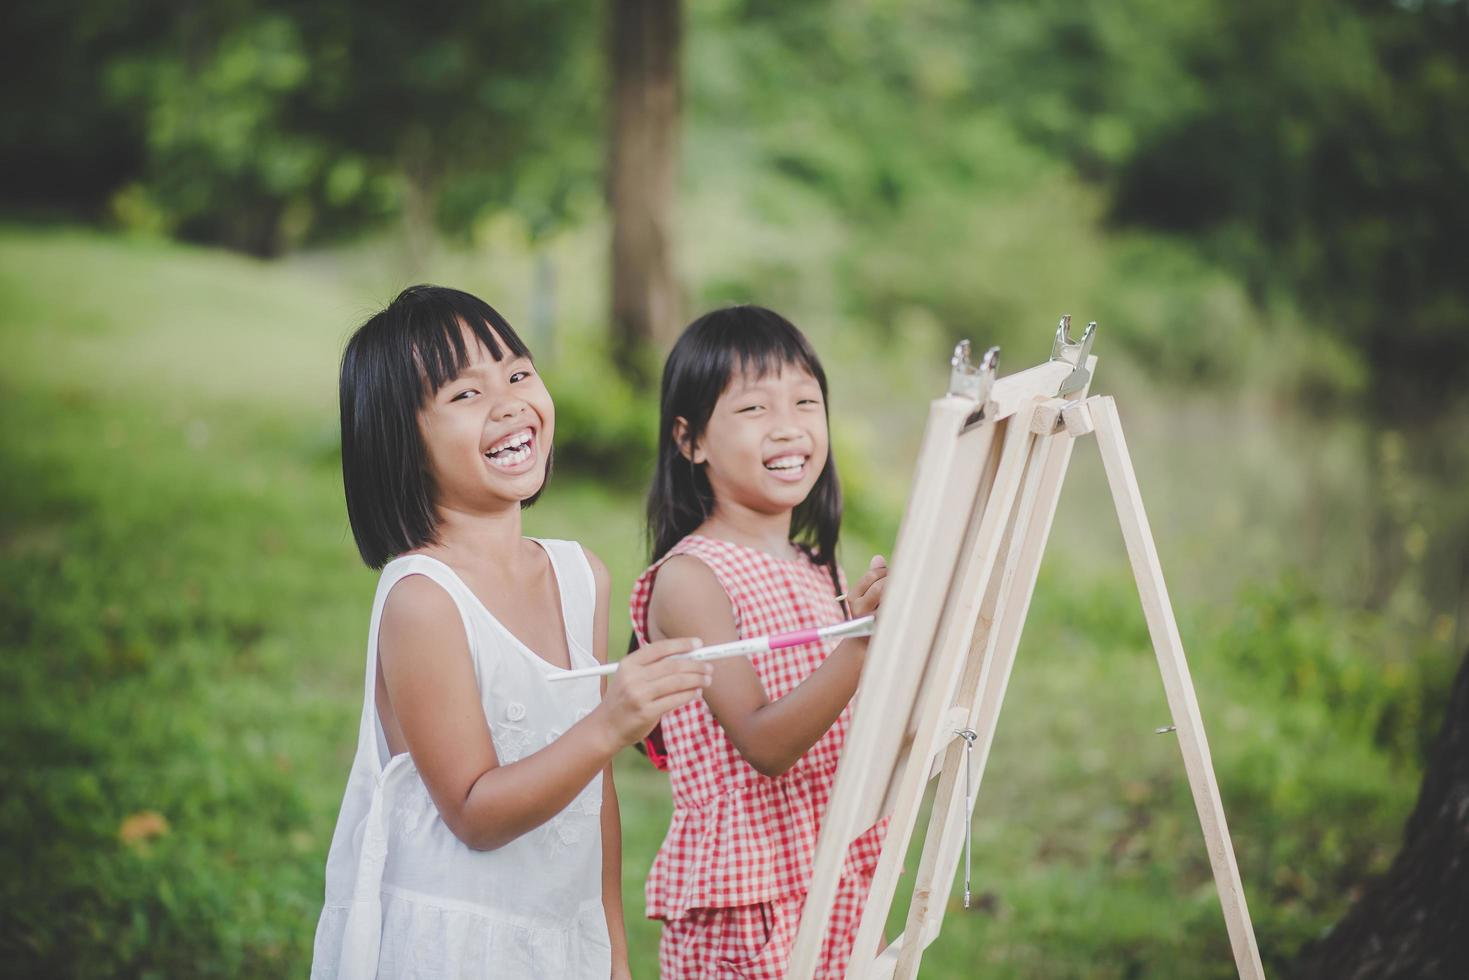 Two little girl painters drawing art in the park photo